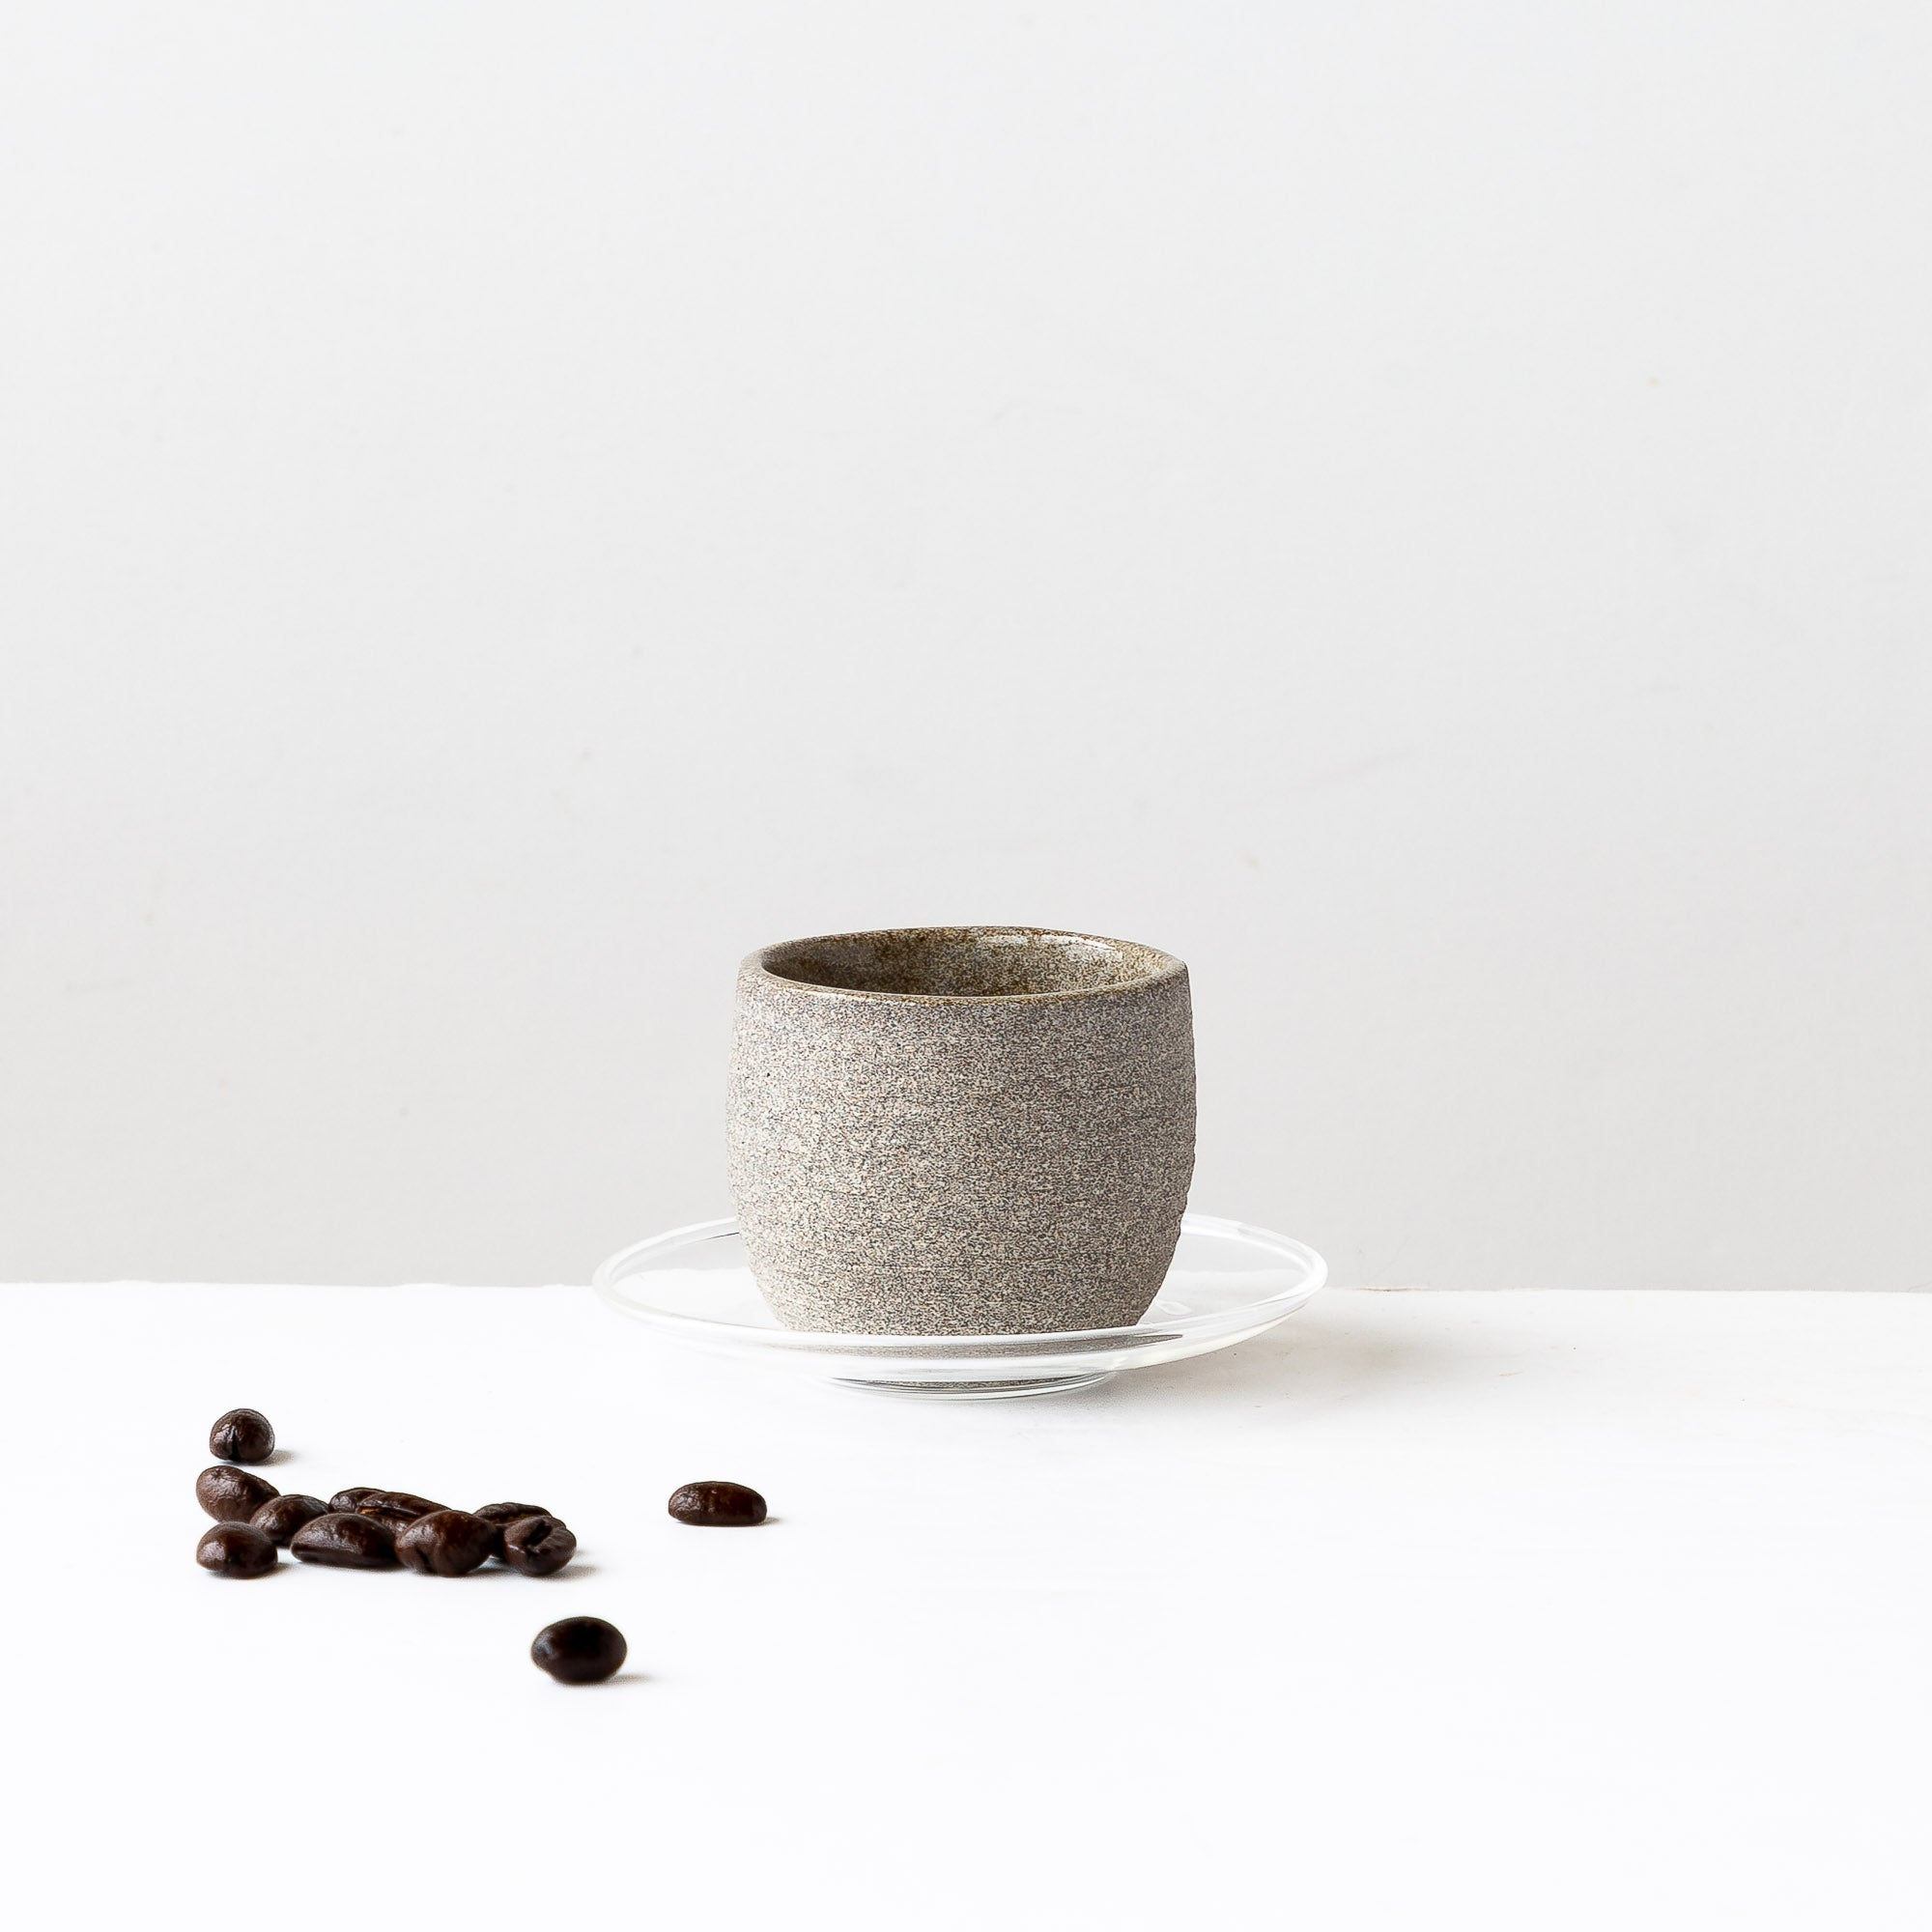 Handmade Stoneware Espresso Coffee Cup & Glass Saucer - Shown with Coffee Beans - Sold by Chic & Basta